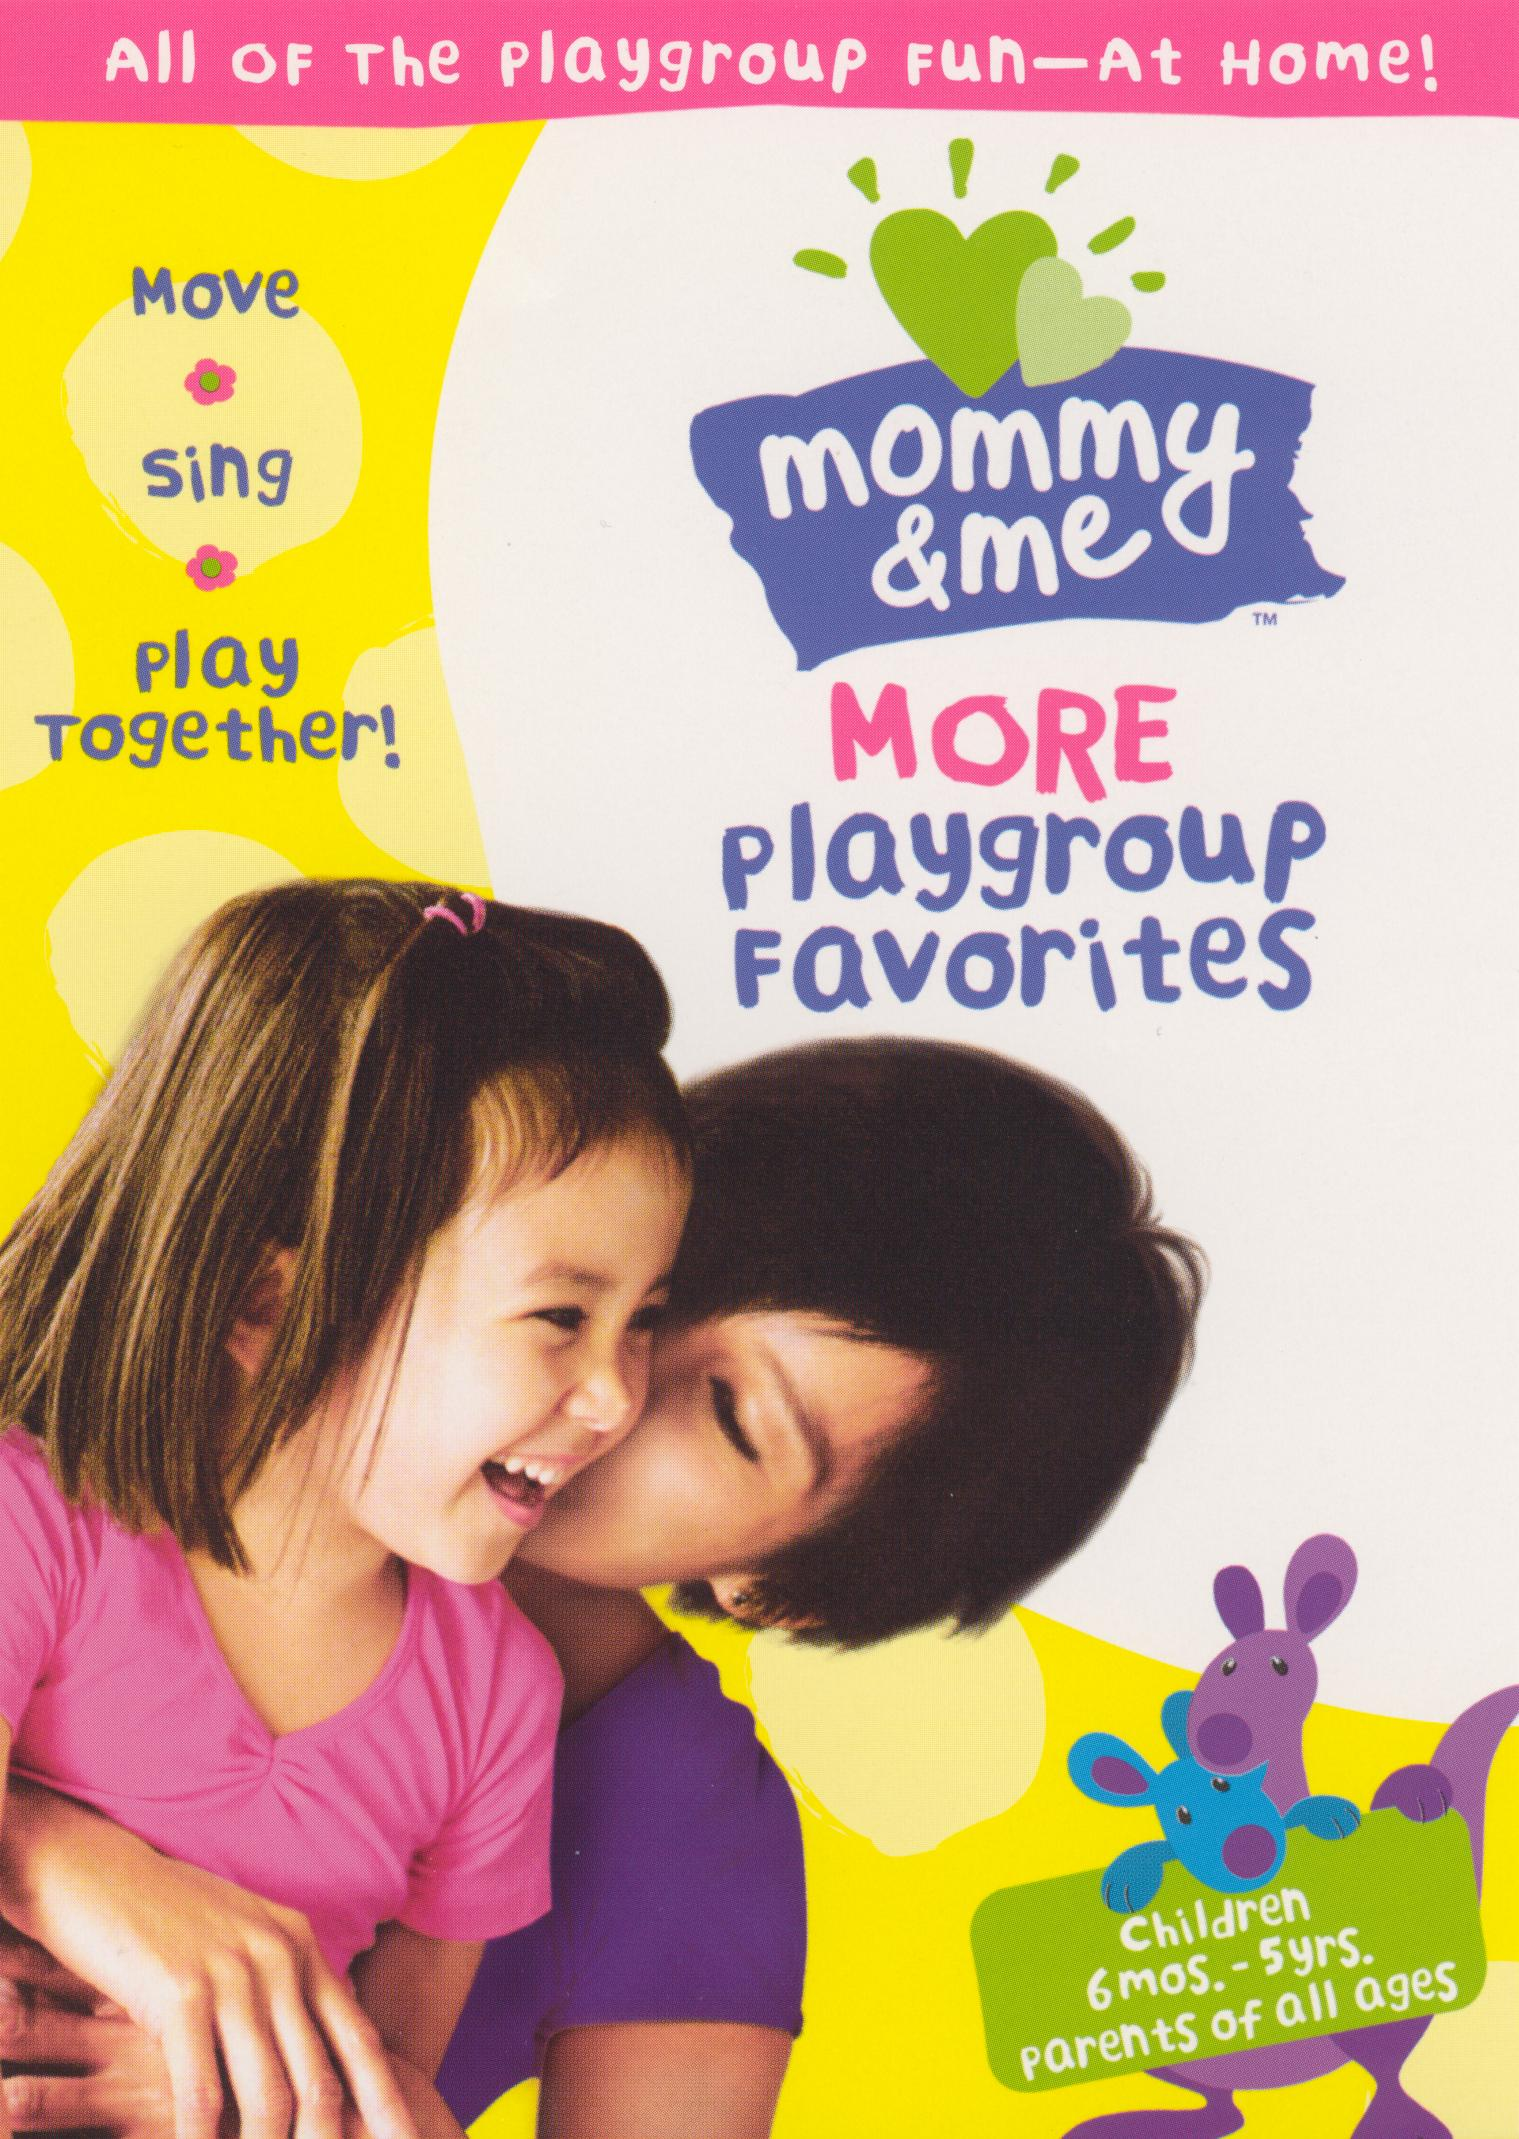 Mommy & Me: More Playgroup Favorites (2003)